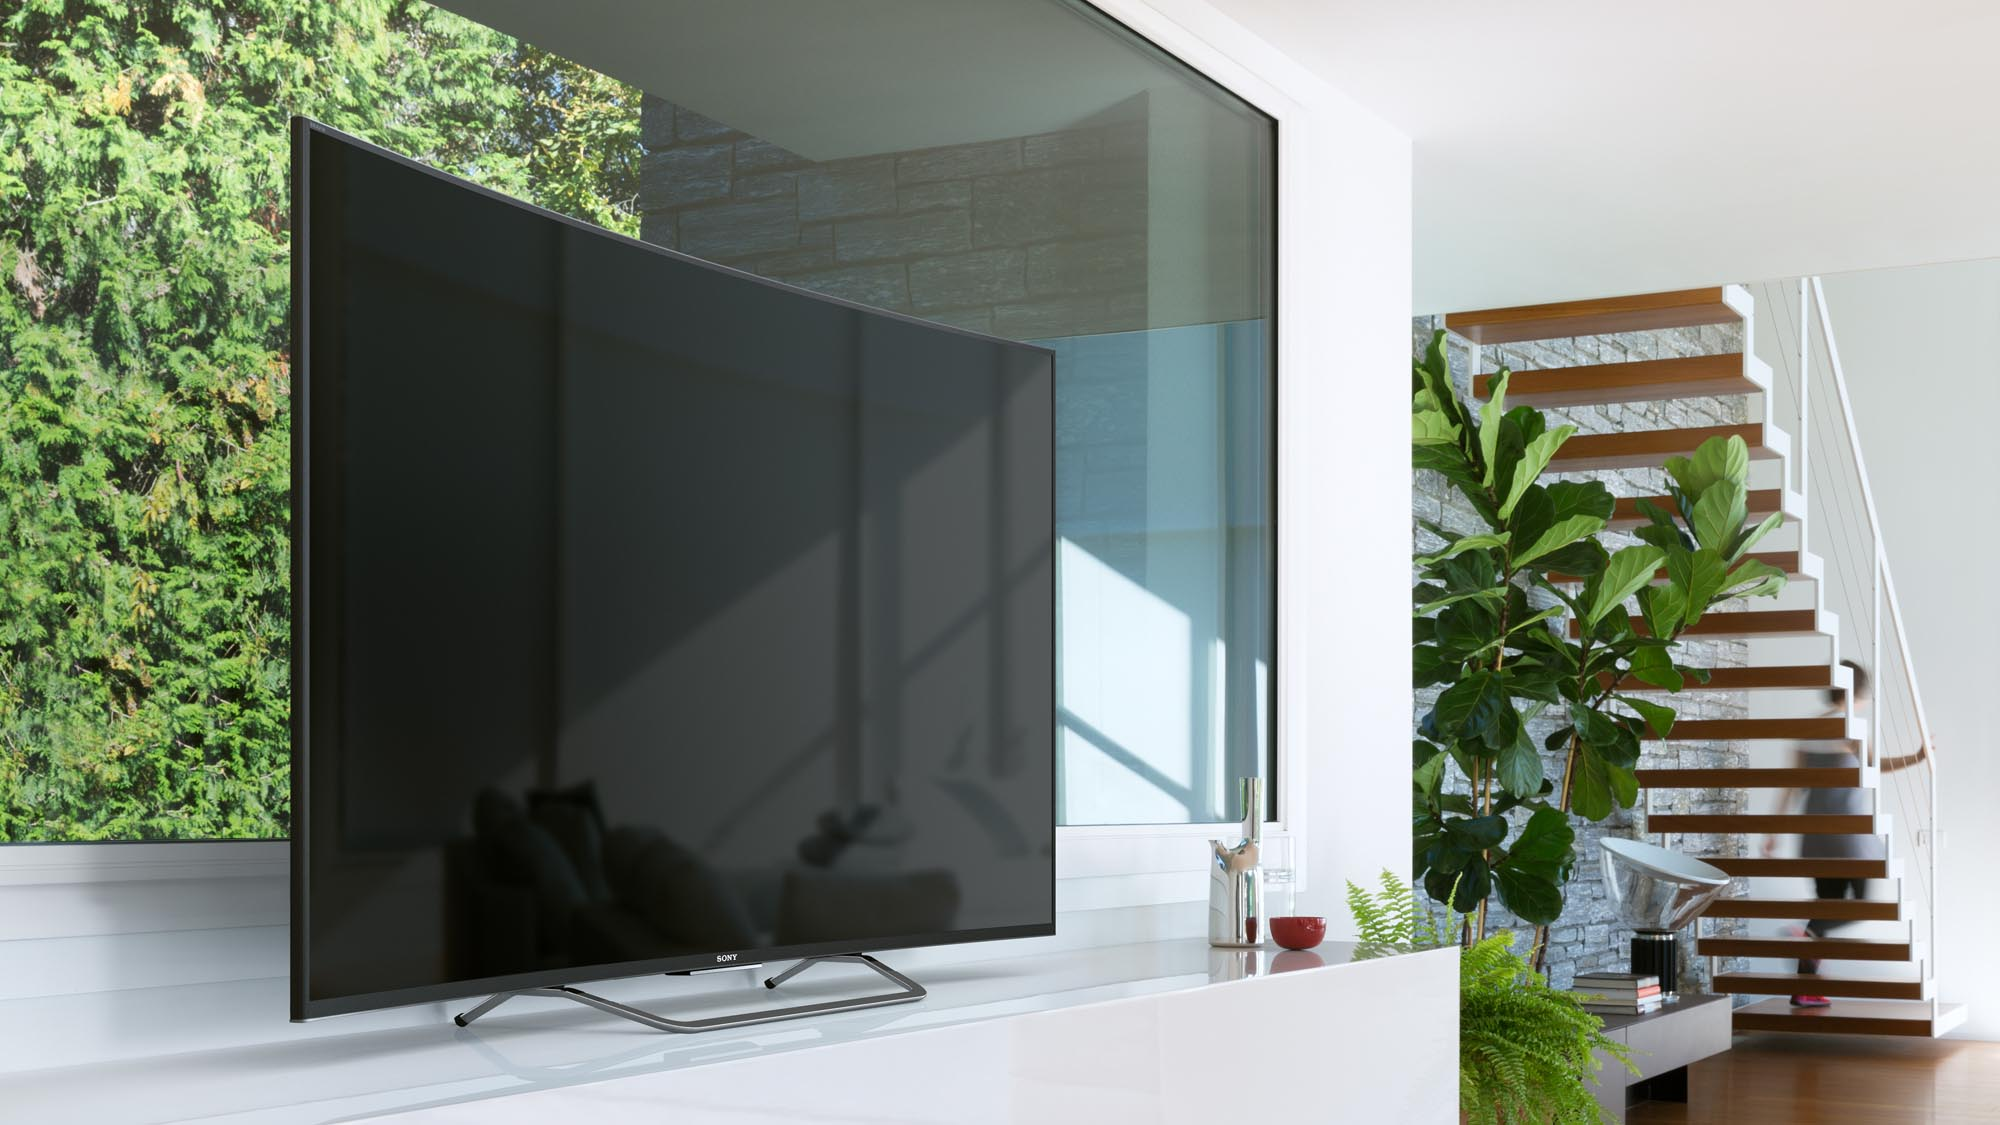 sony_tv_model_numbers_explained